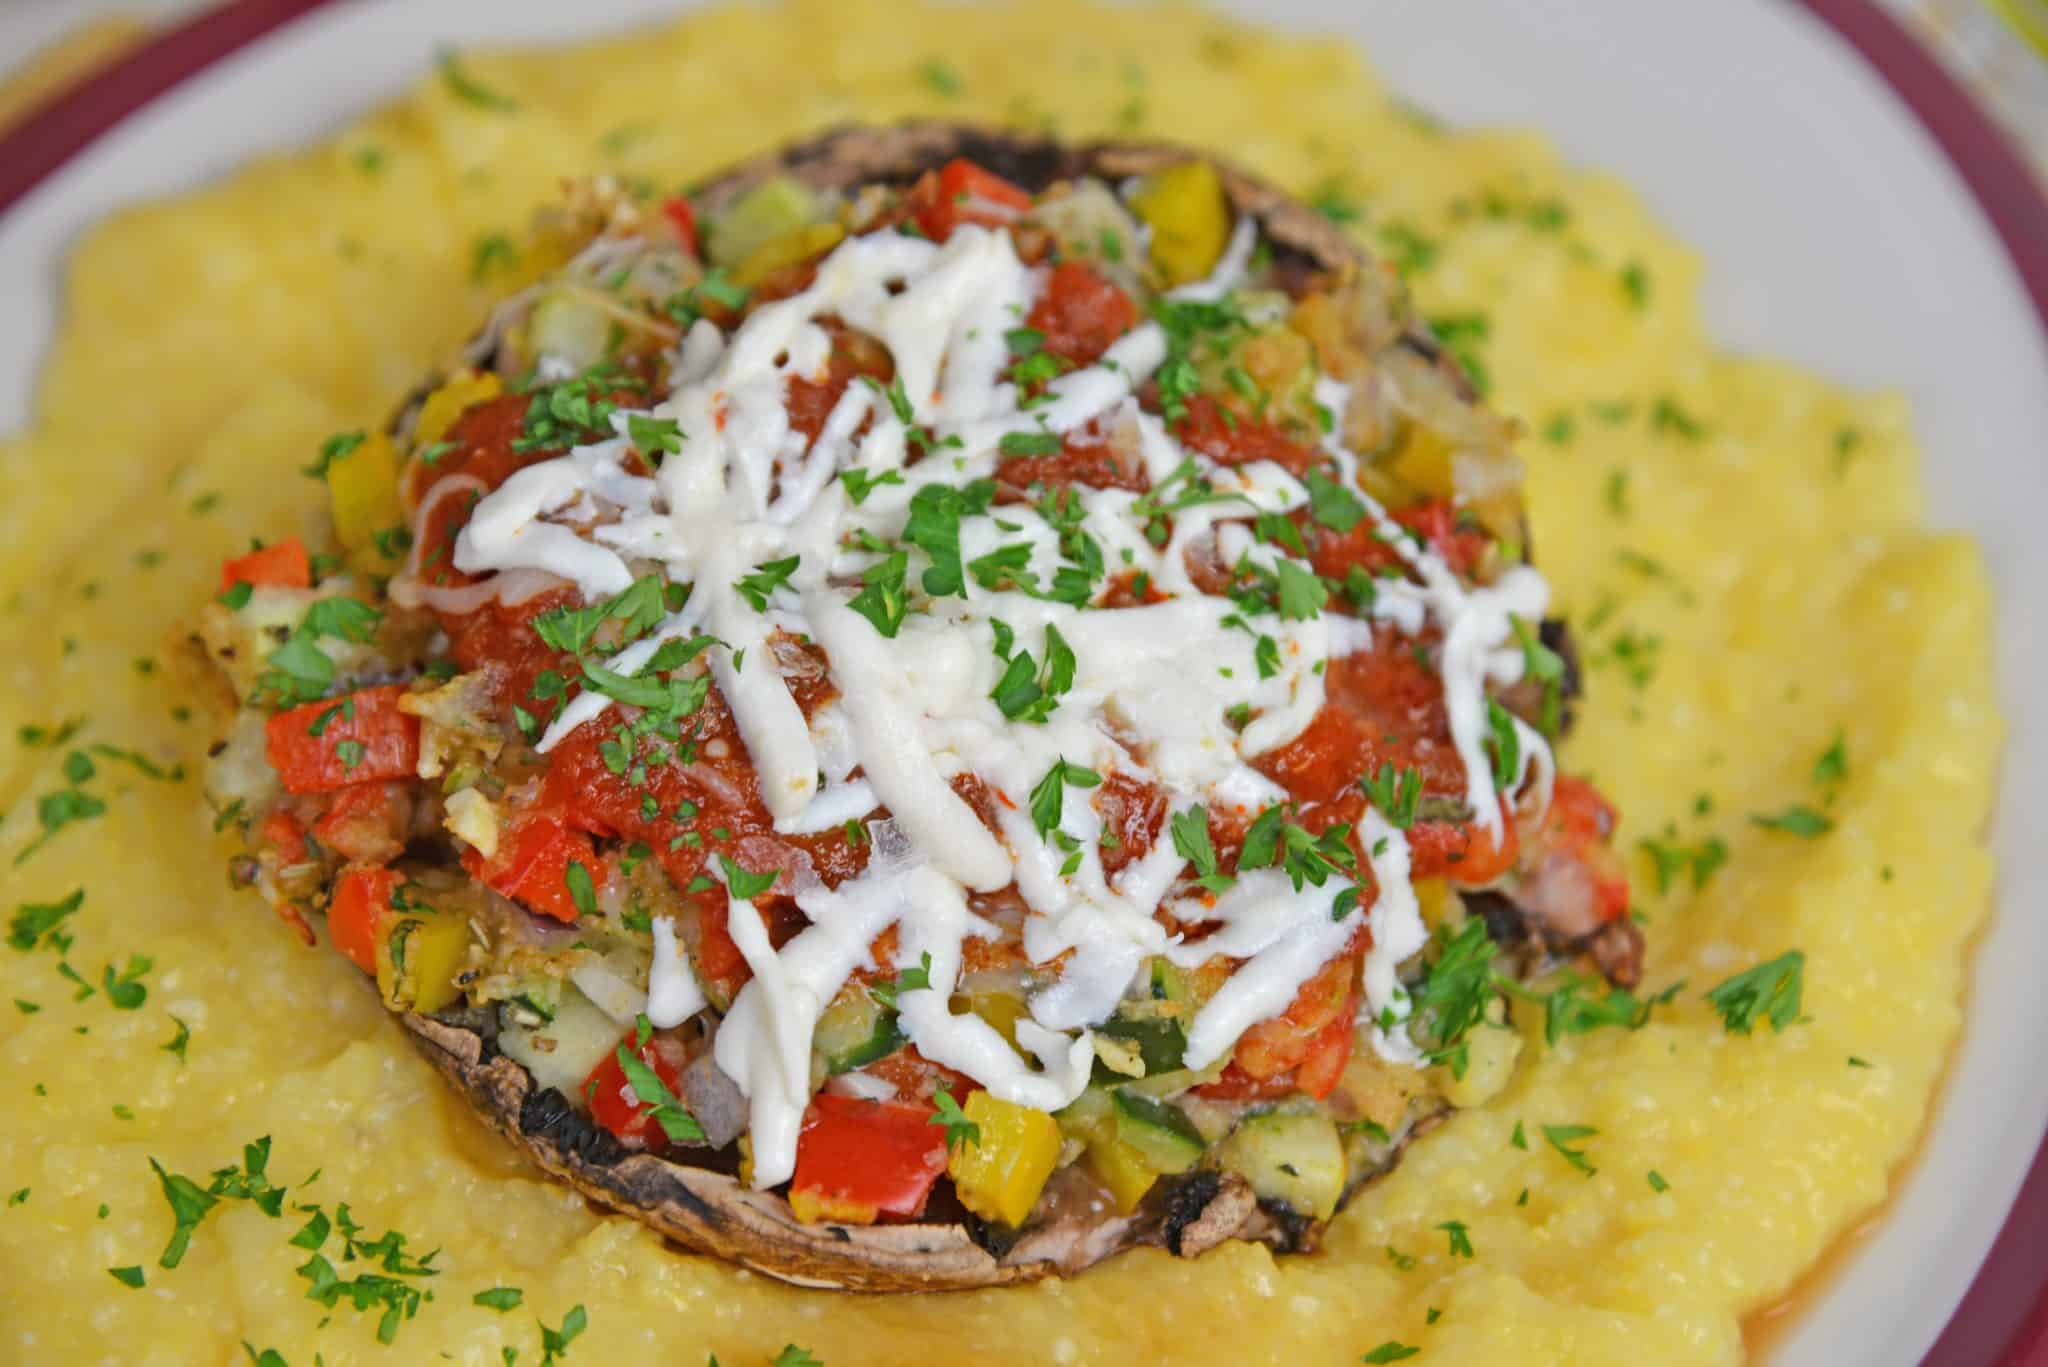 One of the best easy vegetarian recipes are Stuffed Portabella Mushrooms. A great vegetarian dinner idea perfect for meatless Monday! #stuffedmushrooms #vegetarianrecipes www.savoryexperiments.com